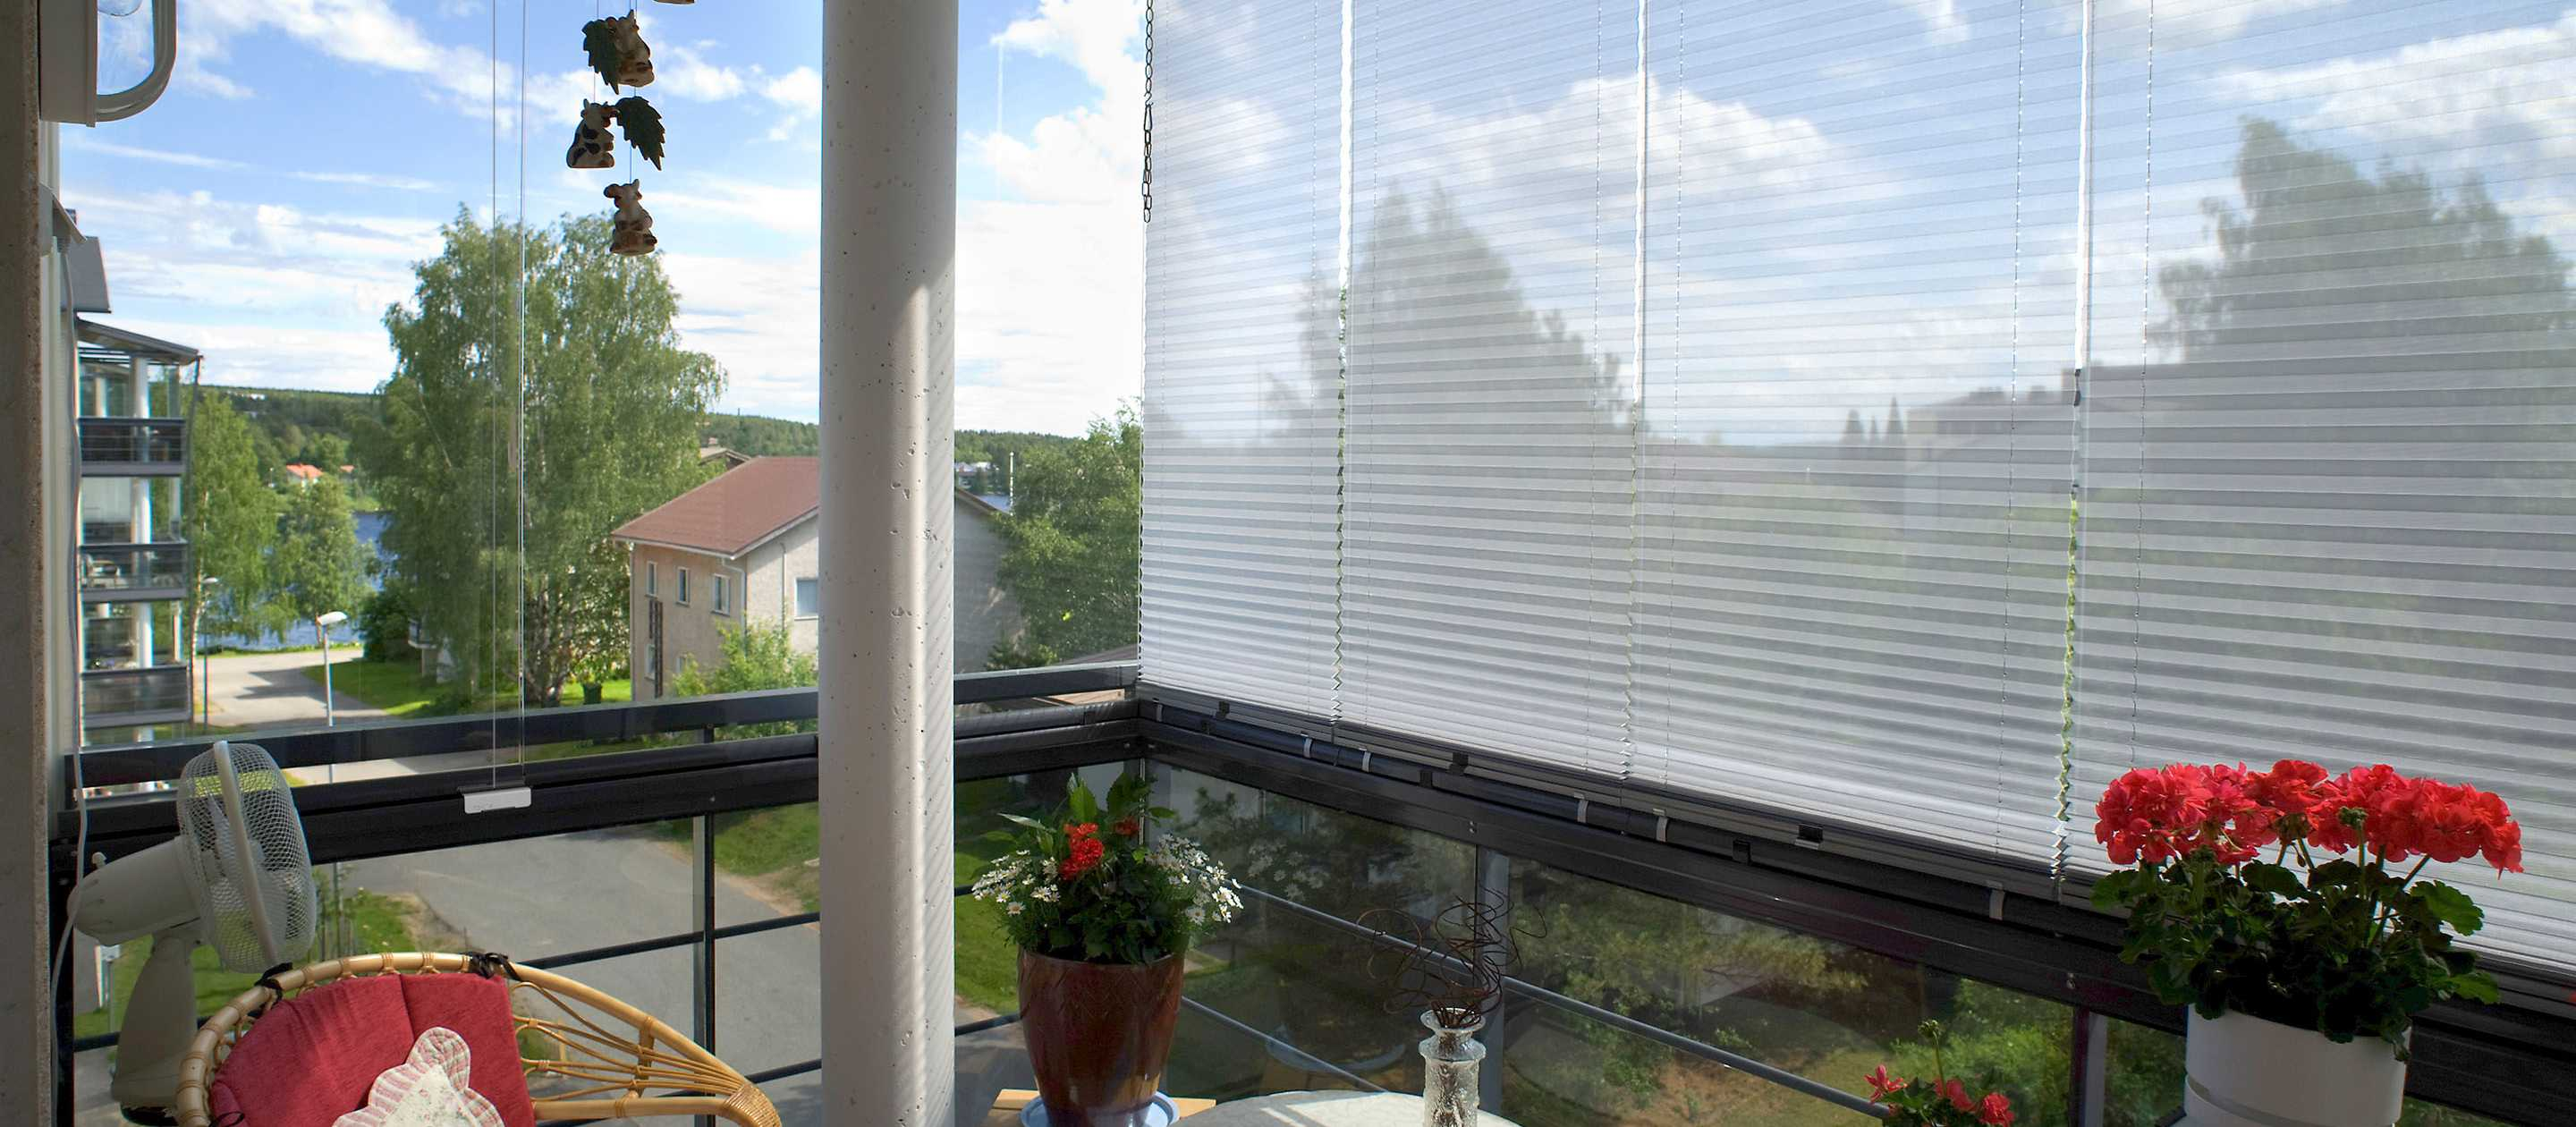 shades for windows, balcony screens and blinds, balcony shades, sunroom shades, custom shades